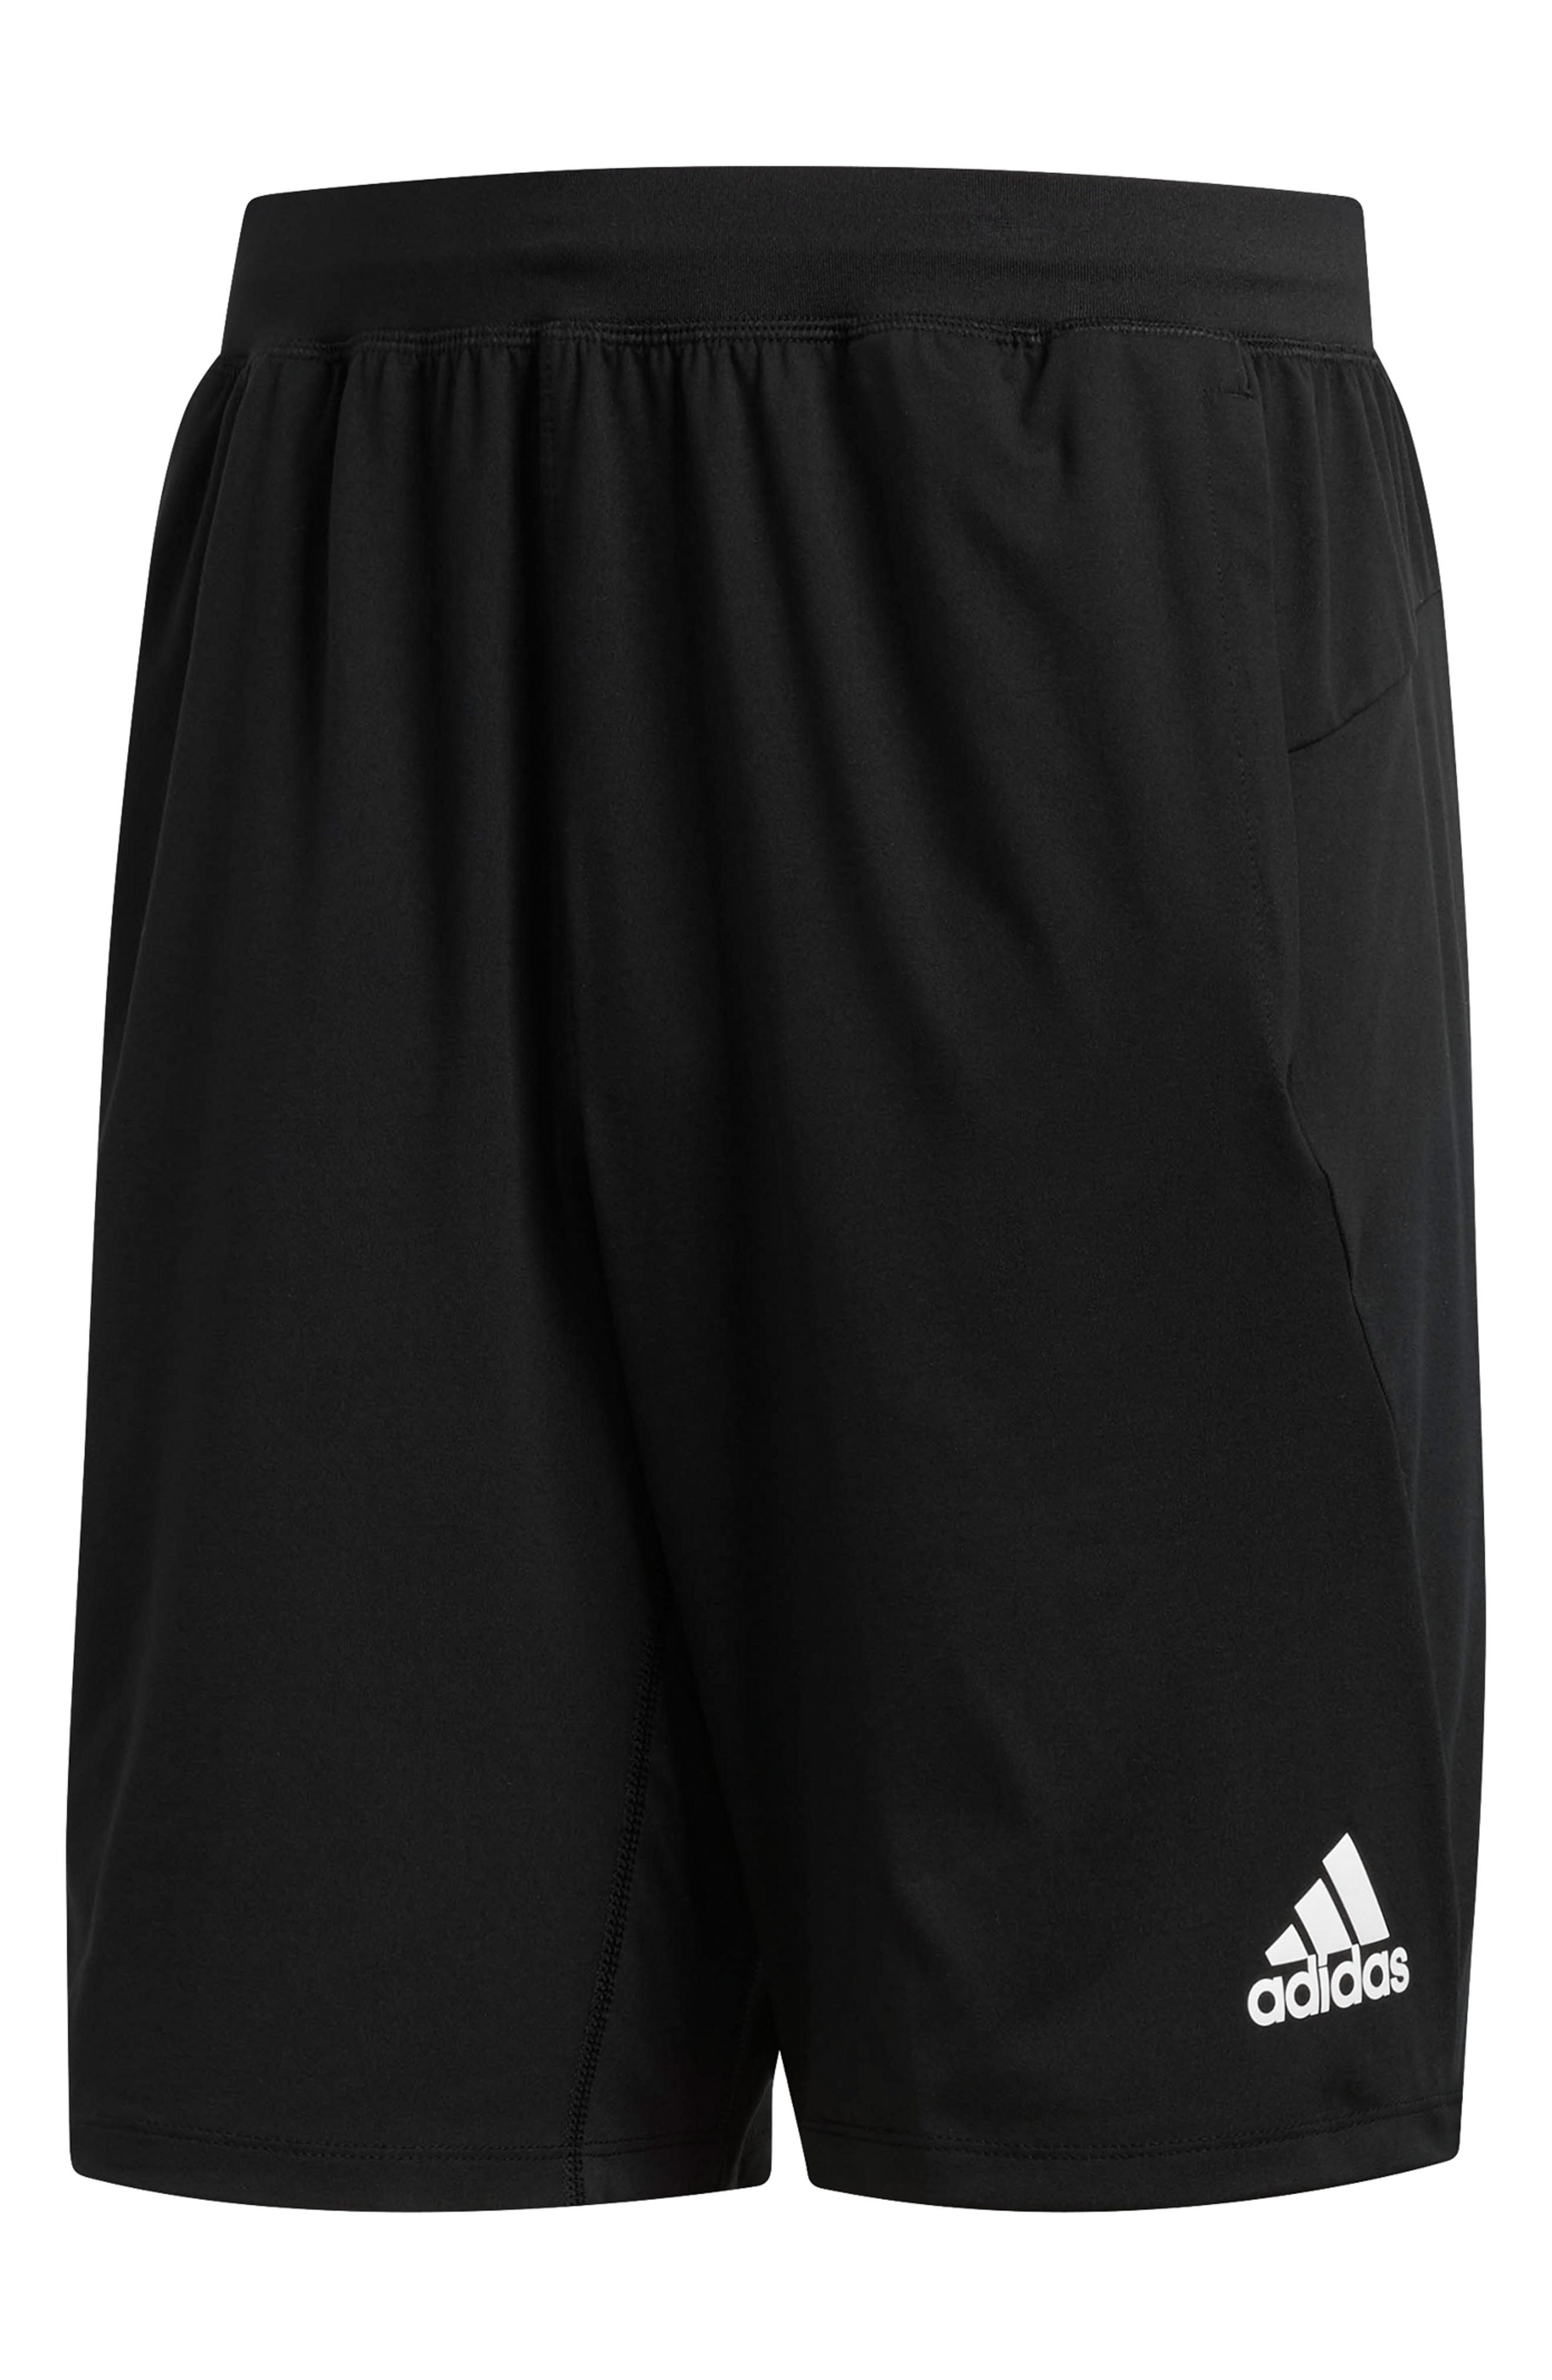 Ultimate Knit Athletic Shorts, Main, color, BLACK